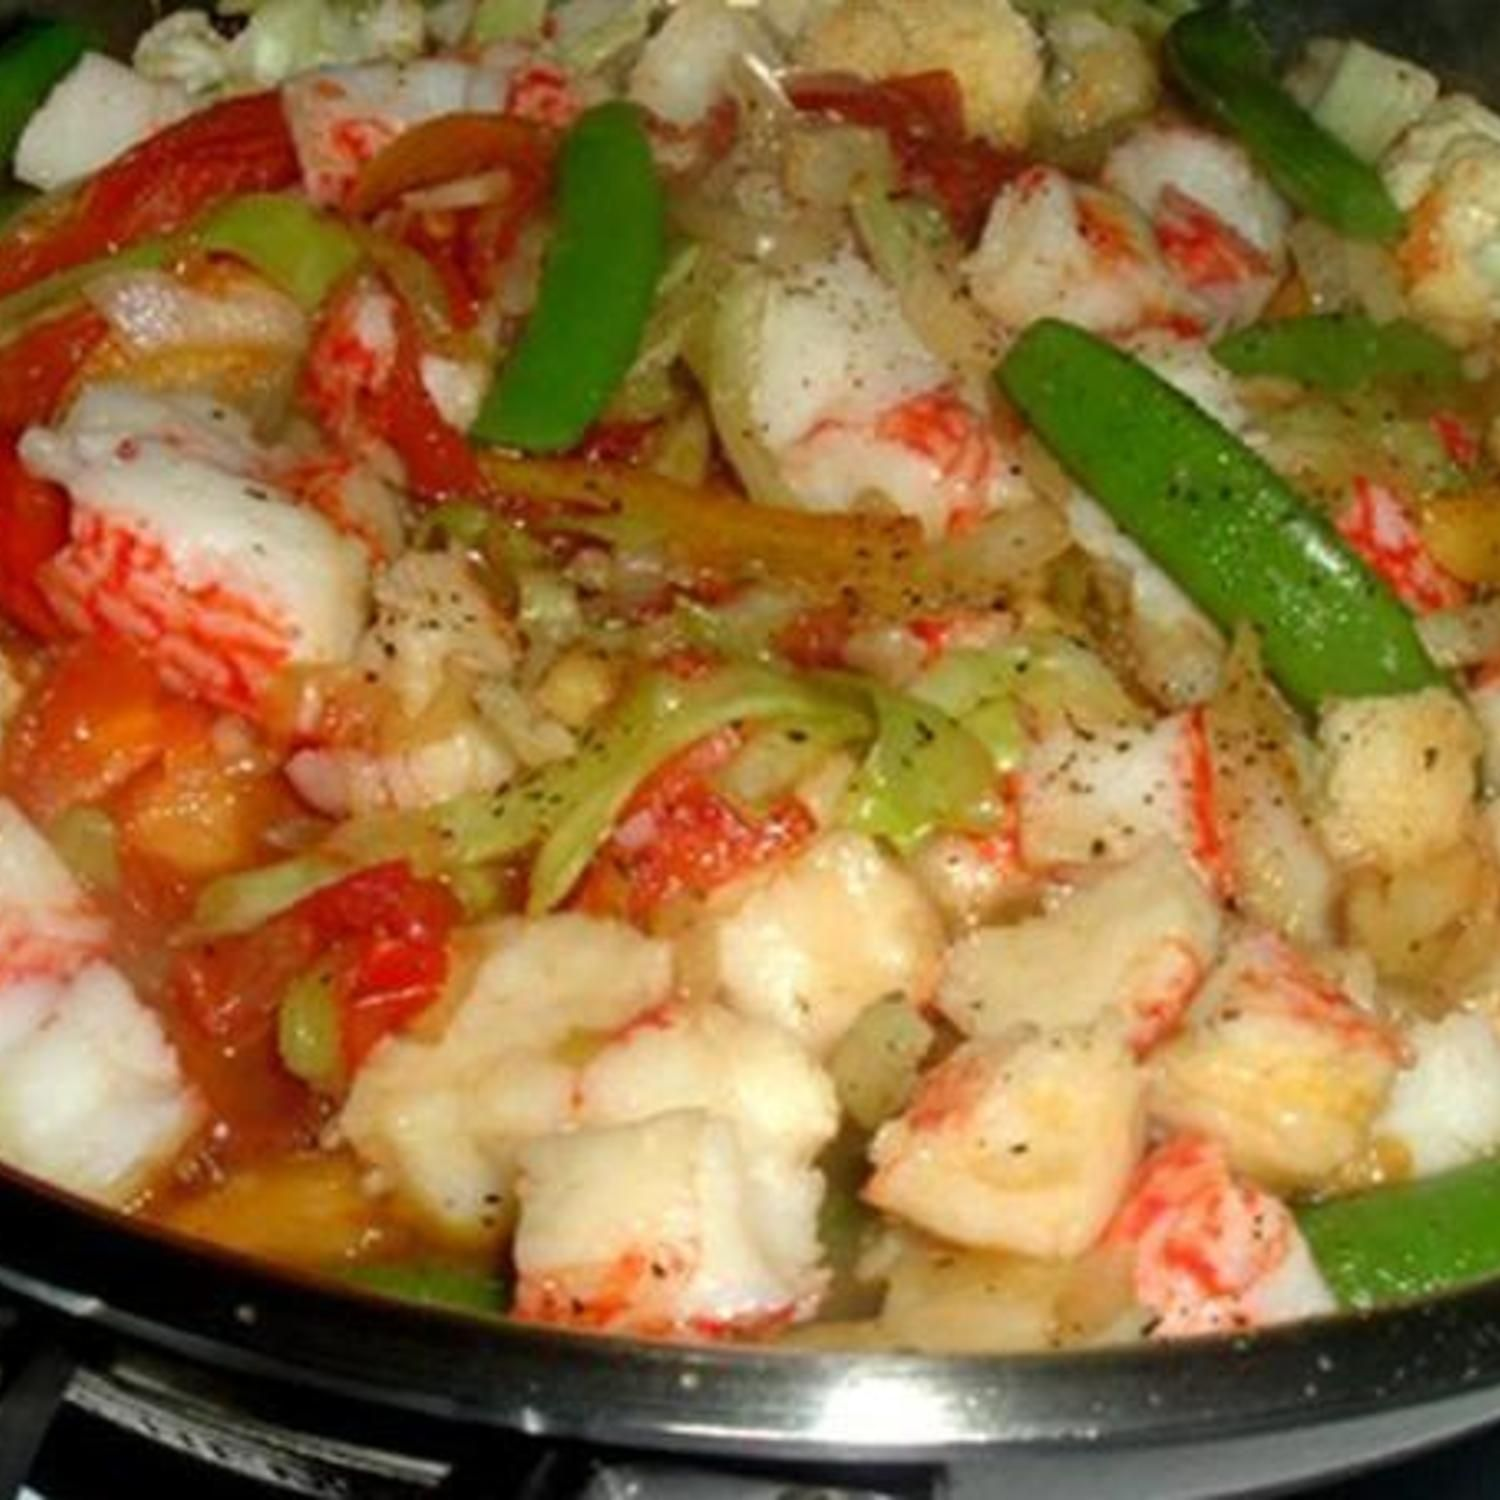 Stirfry Imitation Crab